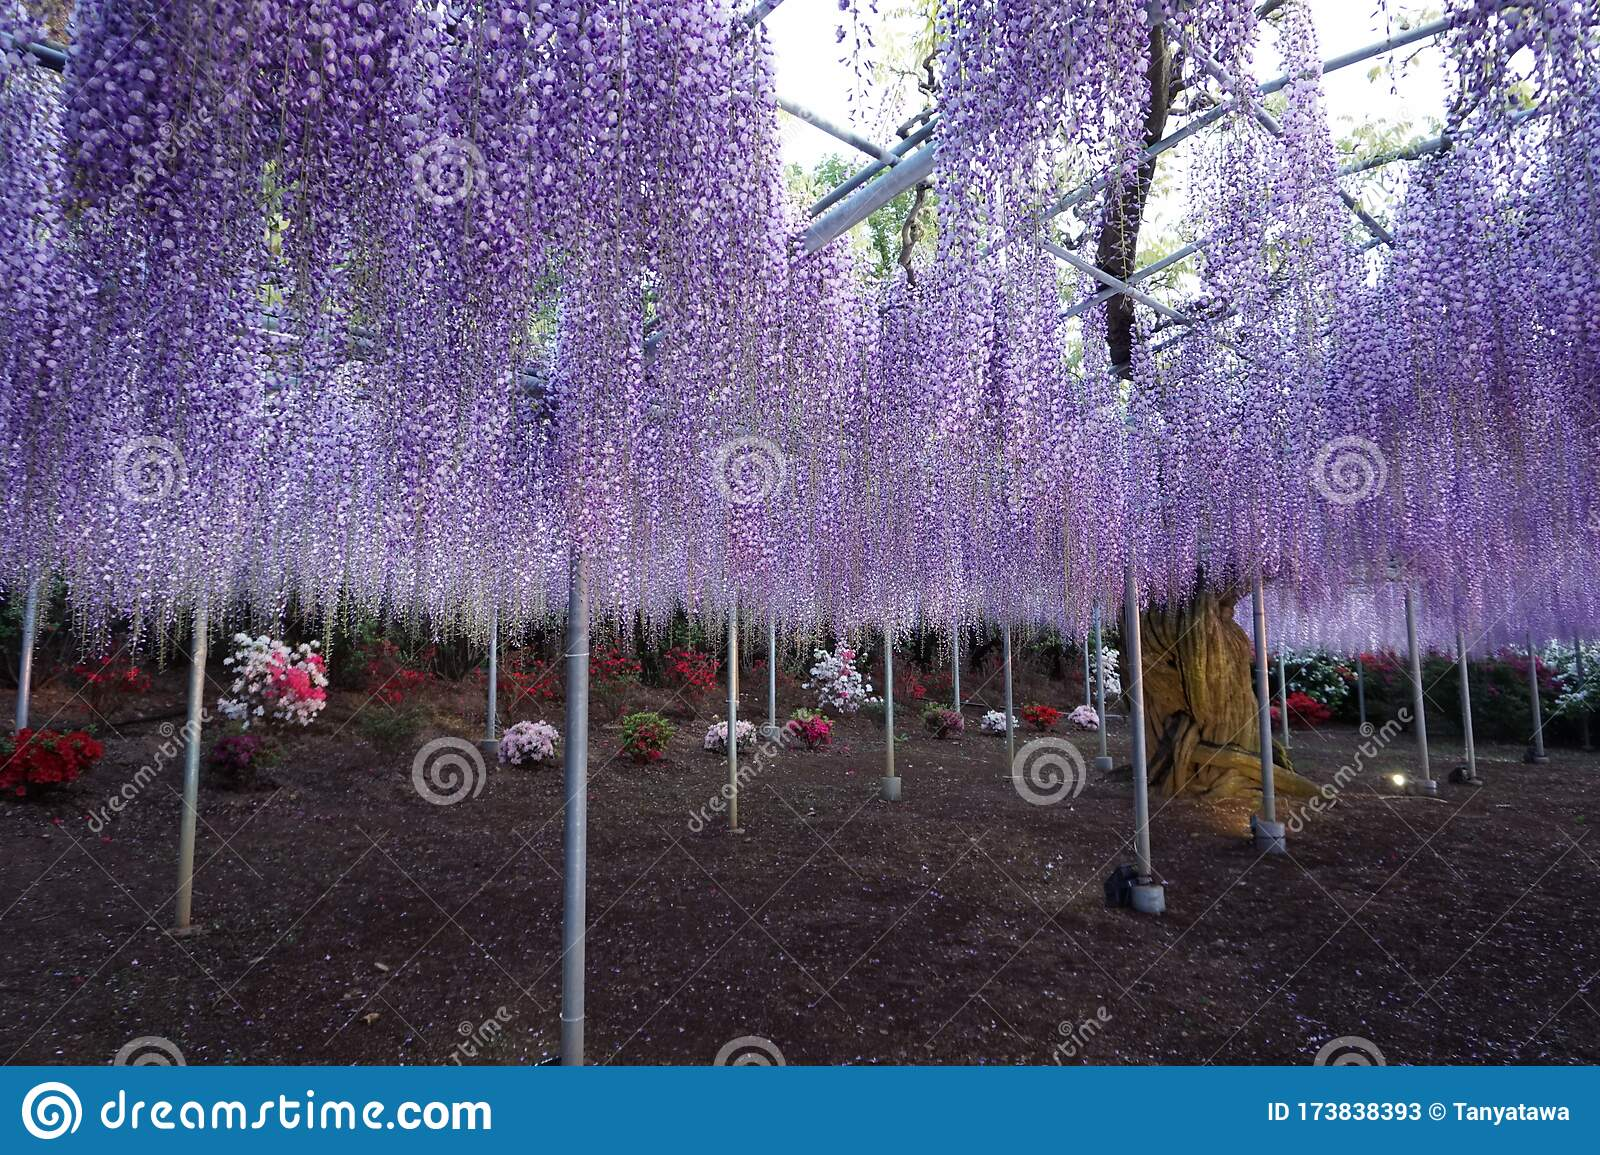 Hanging Bunches Of Purple Wisteria Tree Spring Time In Japan Stock Image Image Of Season City 173838393